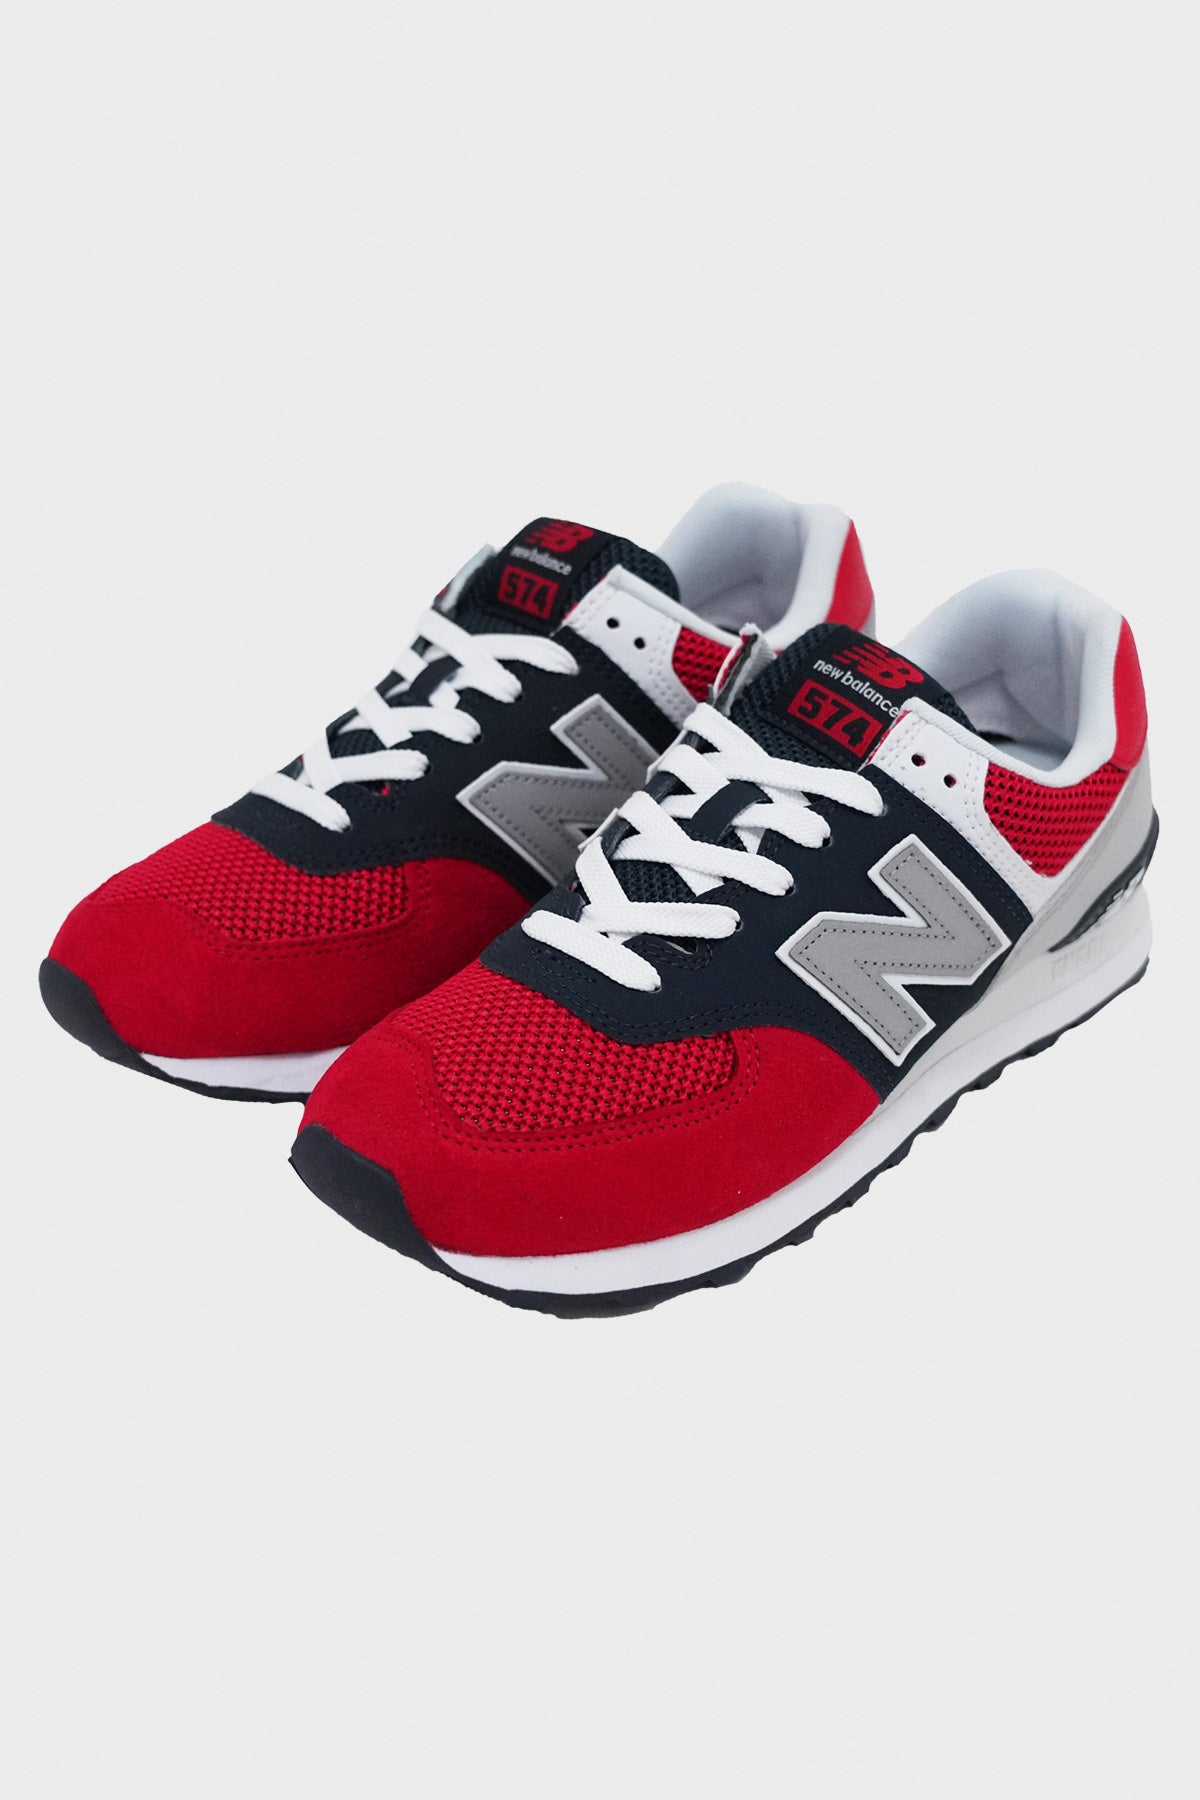 New Balance - 574 Essentials - Red/White/Navy - Canoe Club